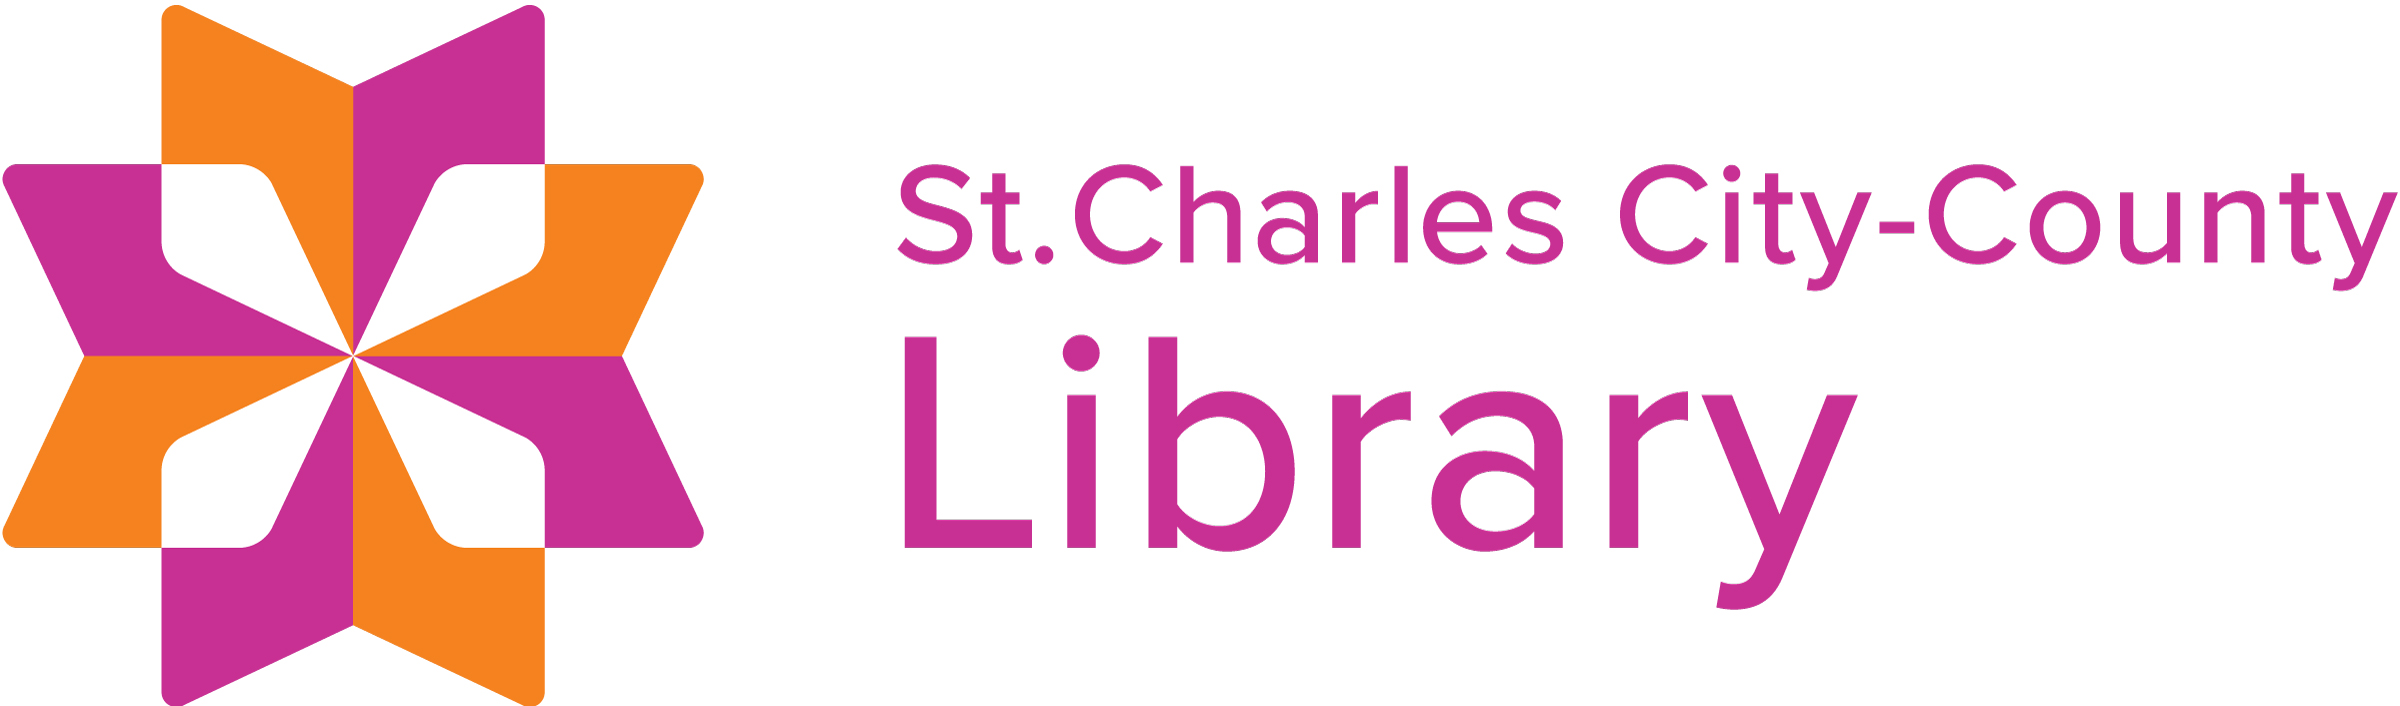 new logo may 2017 Library Dist